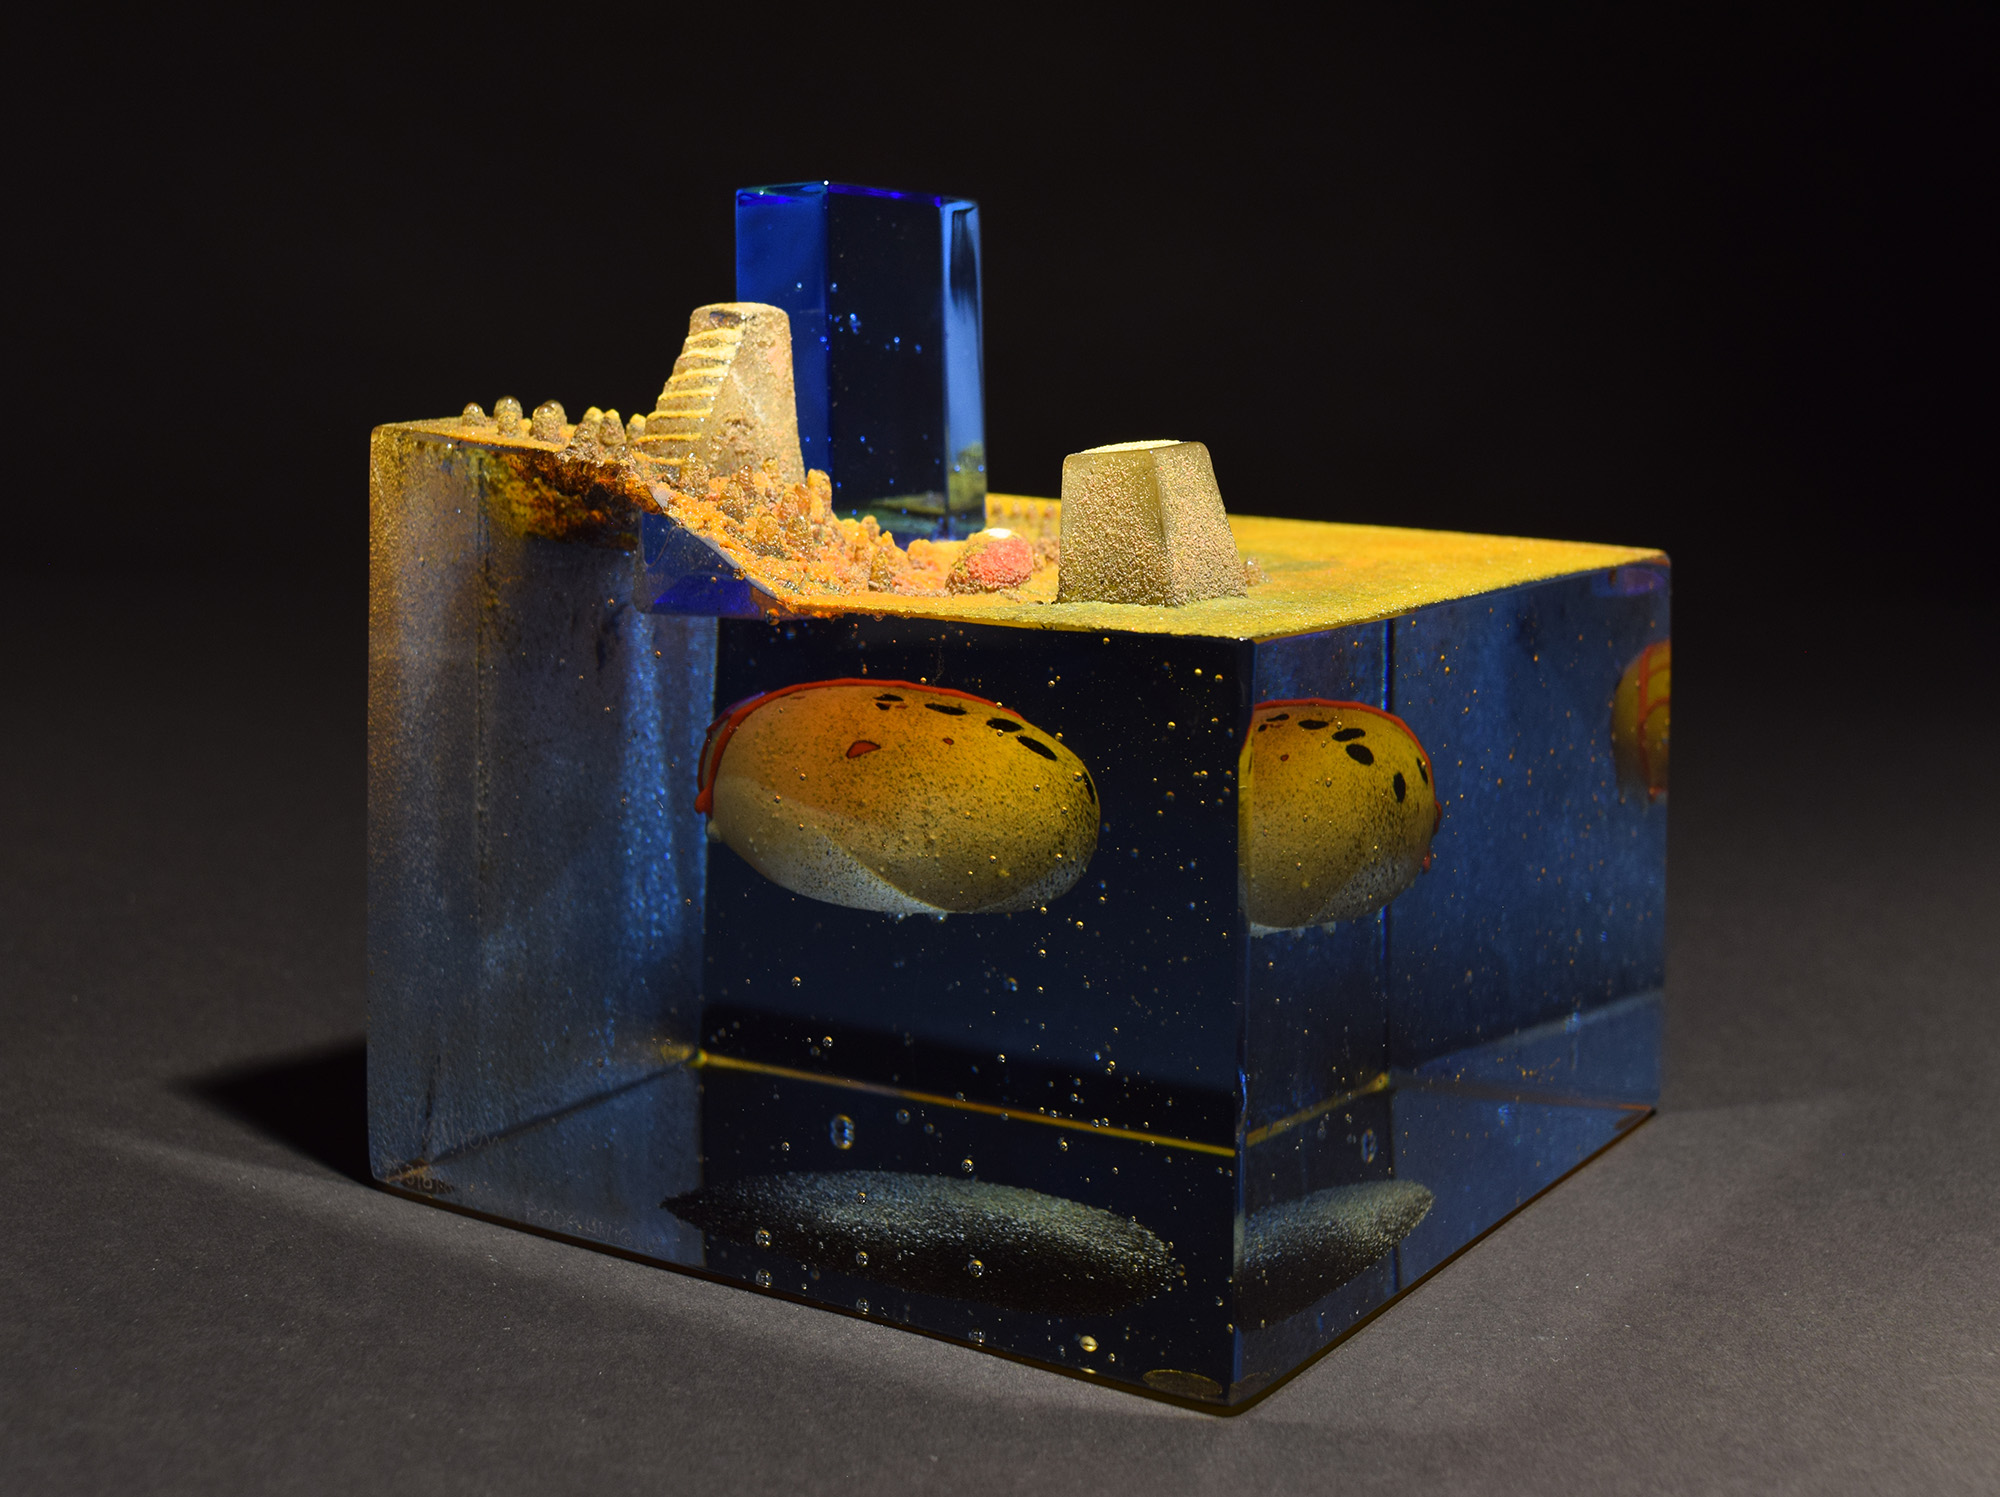 Bertil Vallien, Future, 2017, Cast glass, 5.7 x 6 x 6 in., Courtesy of Schantz Galleries